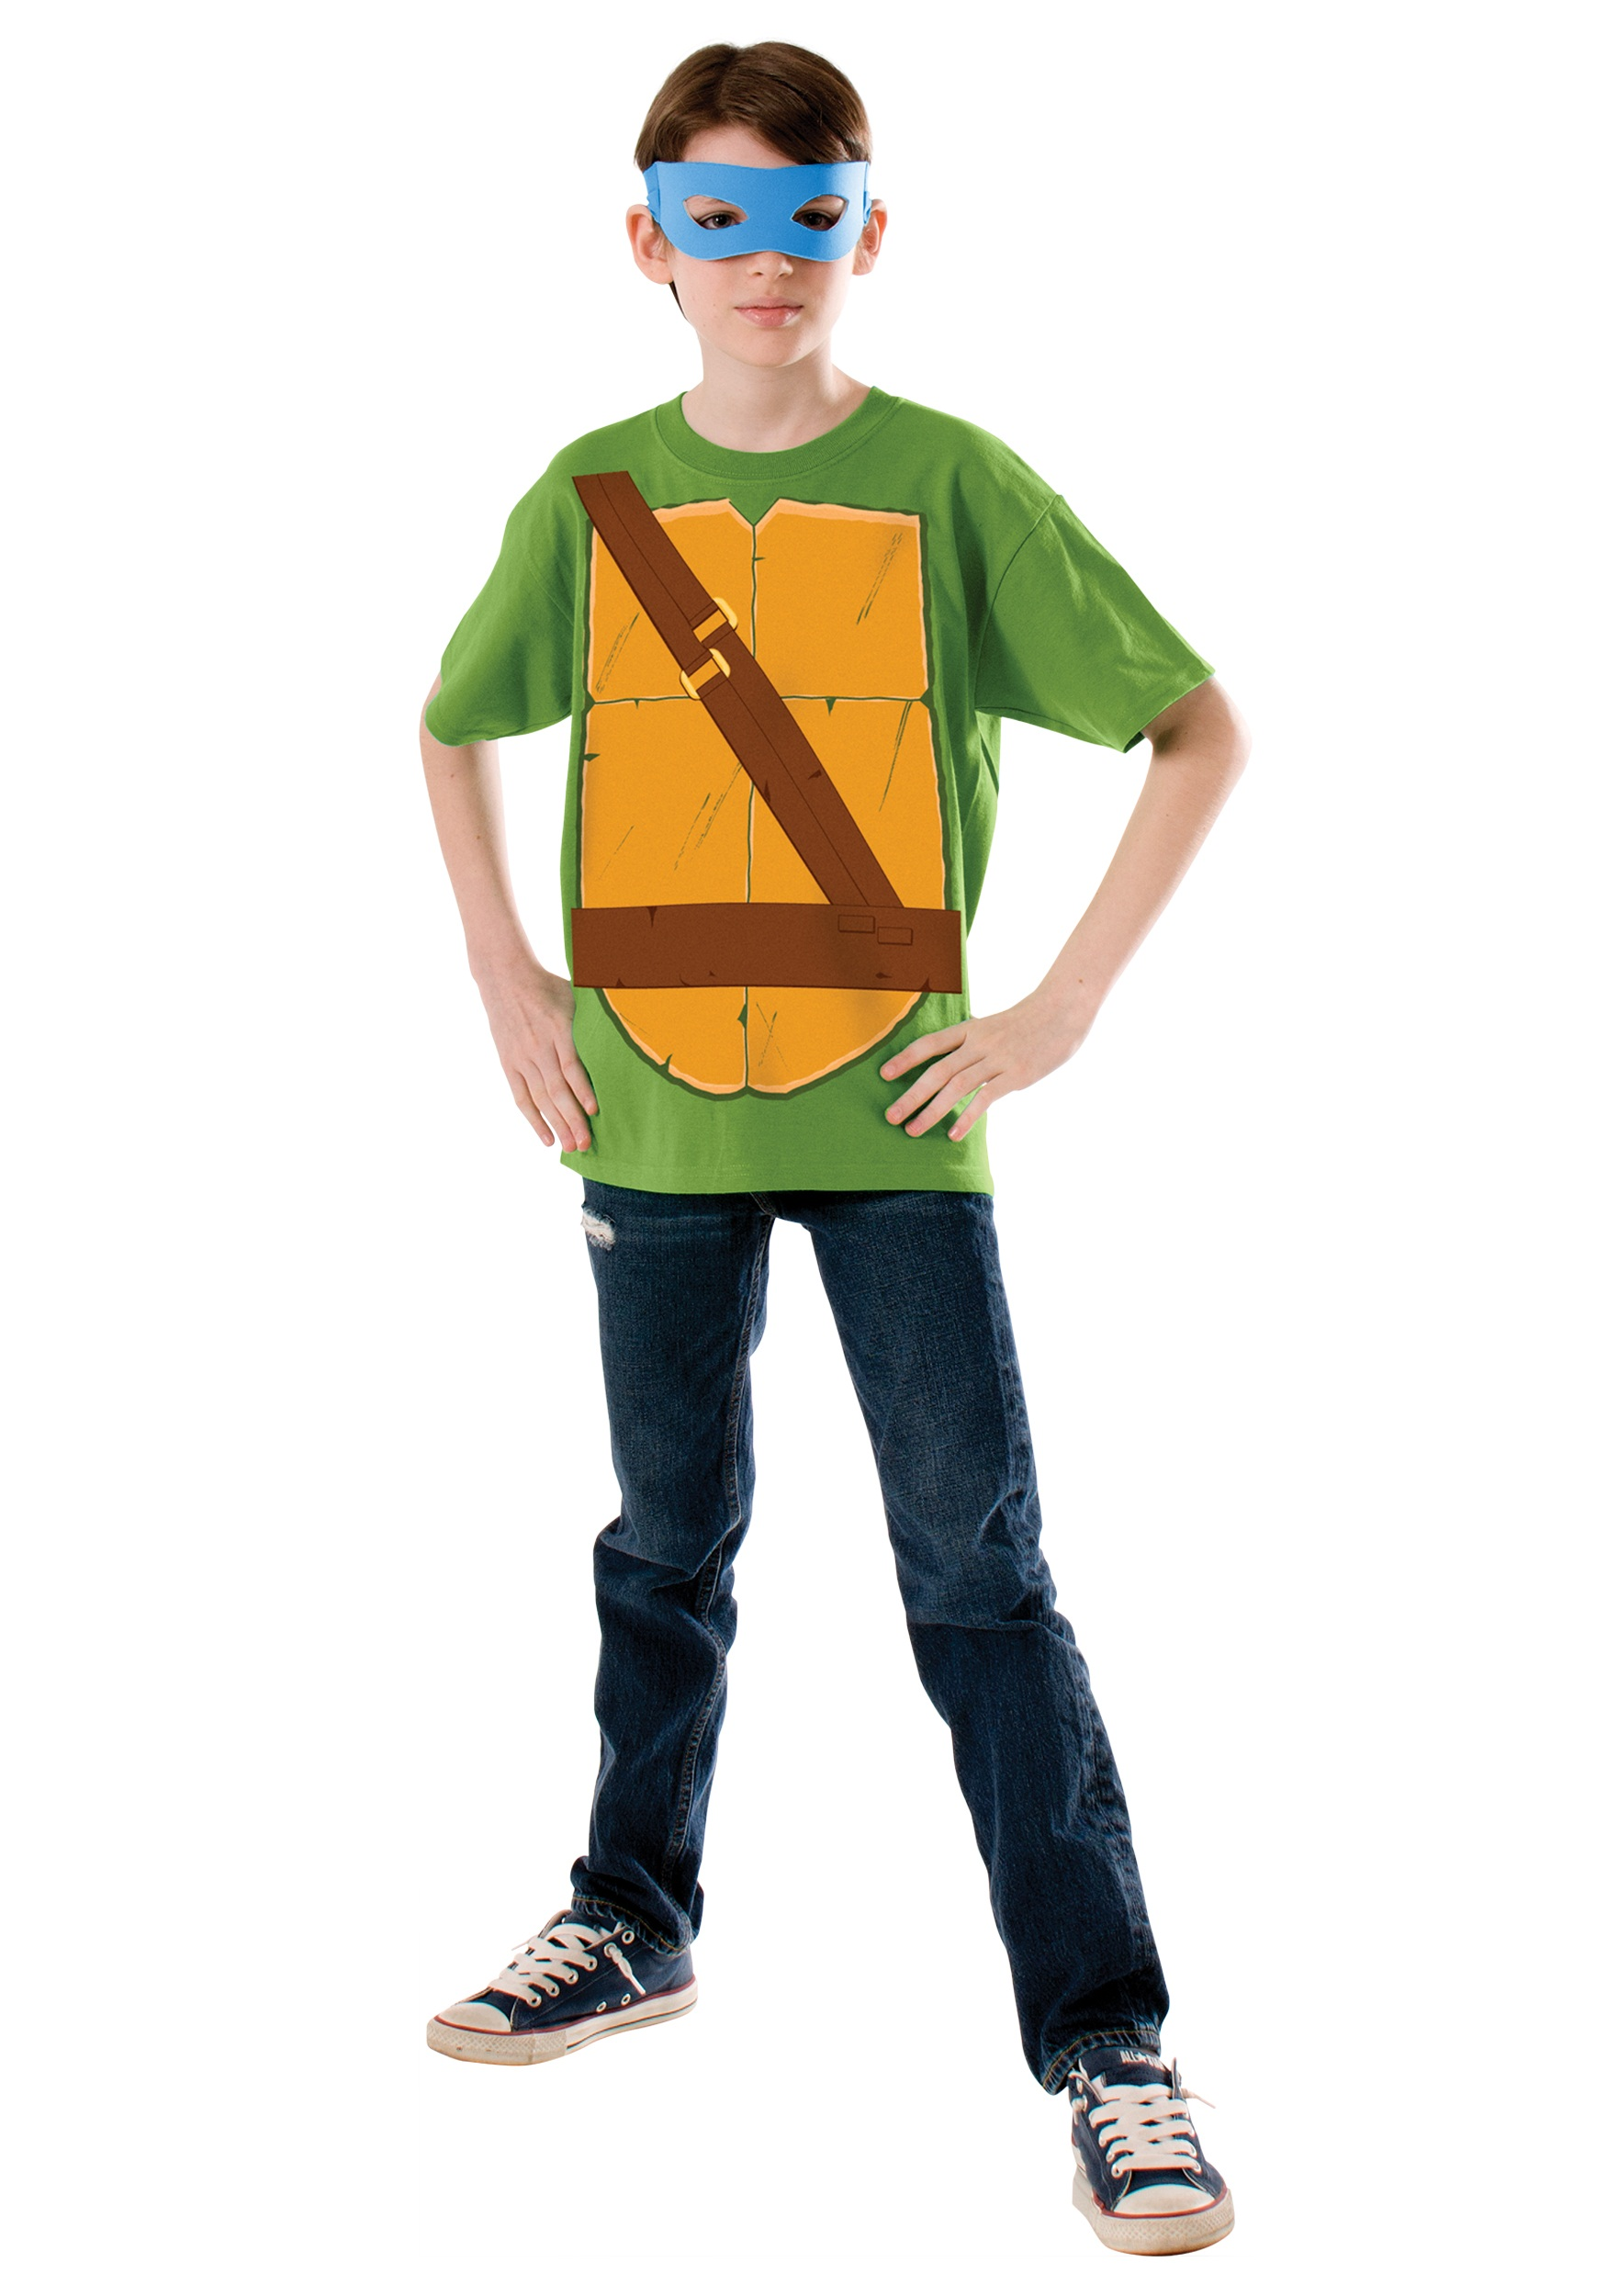 Child TMNT Leonardo Costume Top